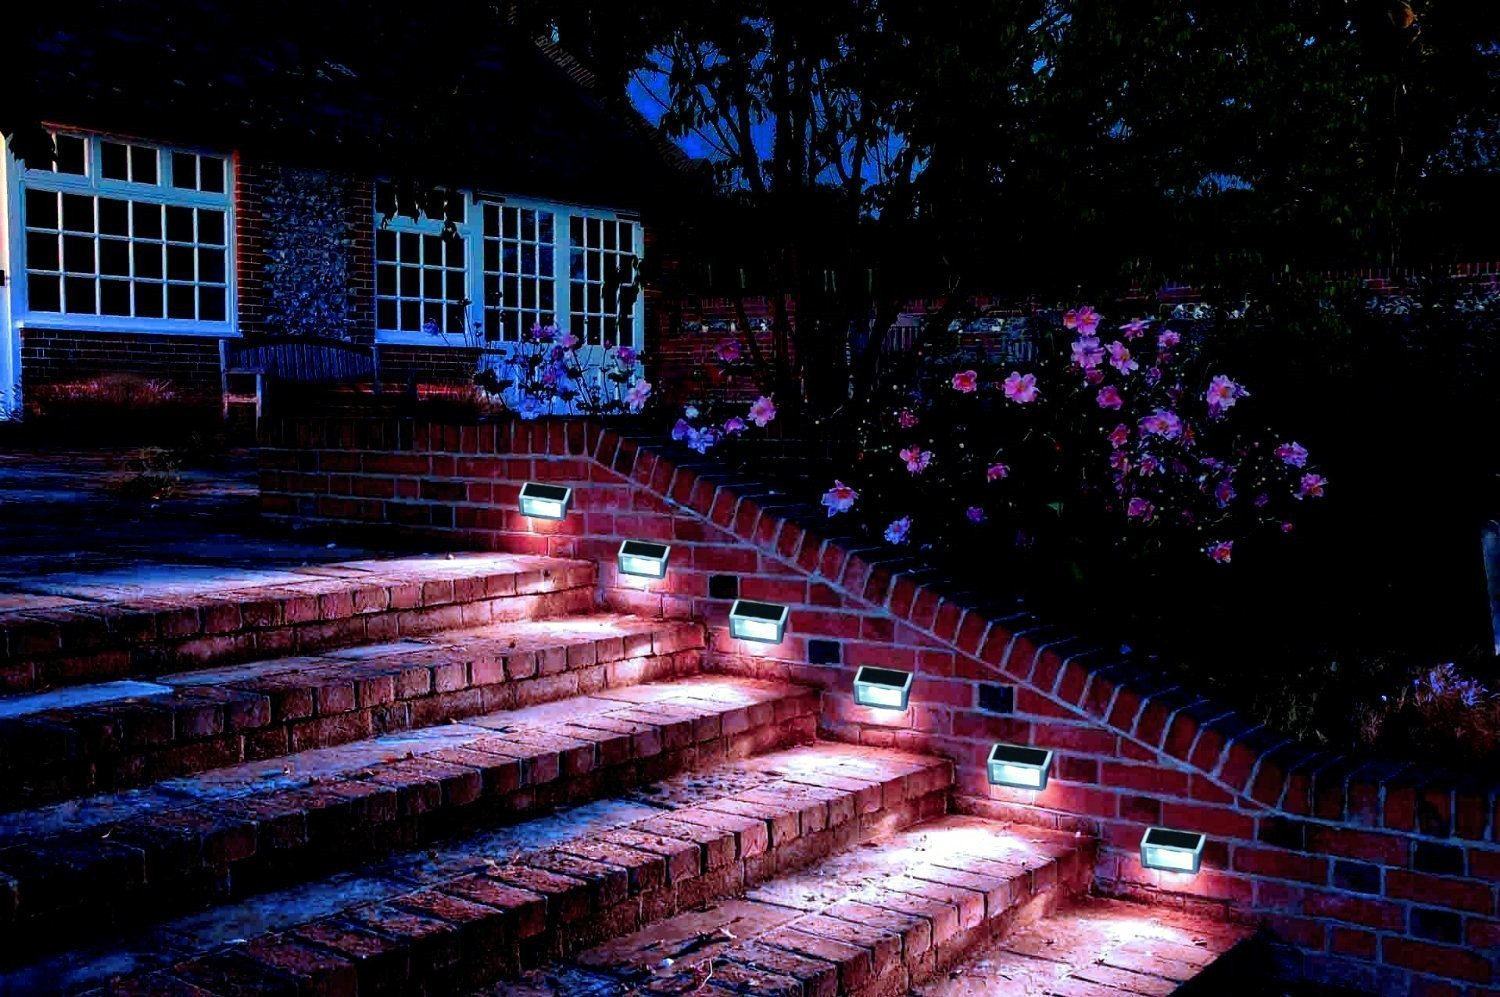 YINGHAO 3 LED Outdoor Solar Powered Step Stairs Light  2 Pack     Amazon comYINGHAO 3 LED Outdoor Solar Powered Step Stairs Light  2 Pack  . Manor House Outdoor Lighting. Home Design Ideas